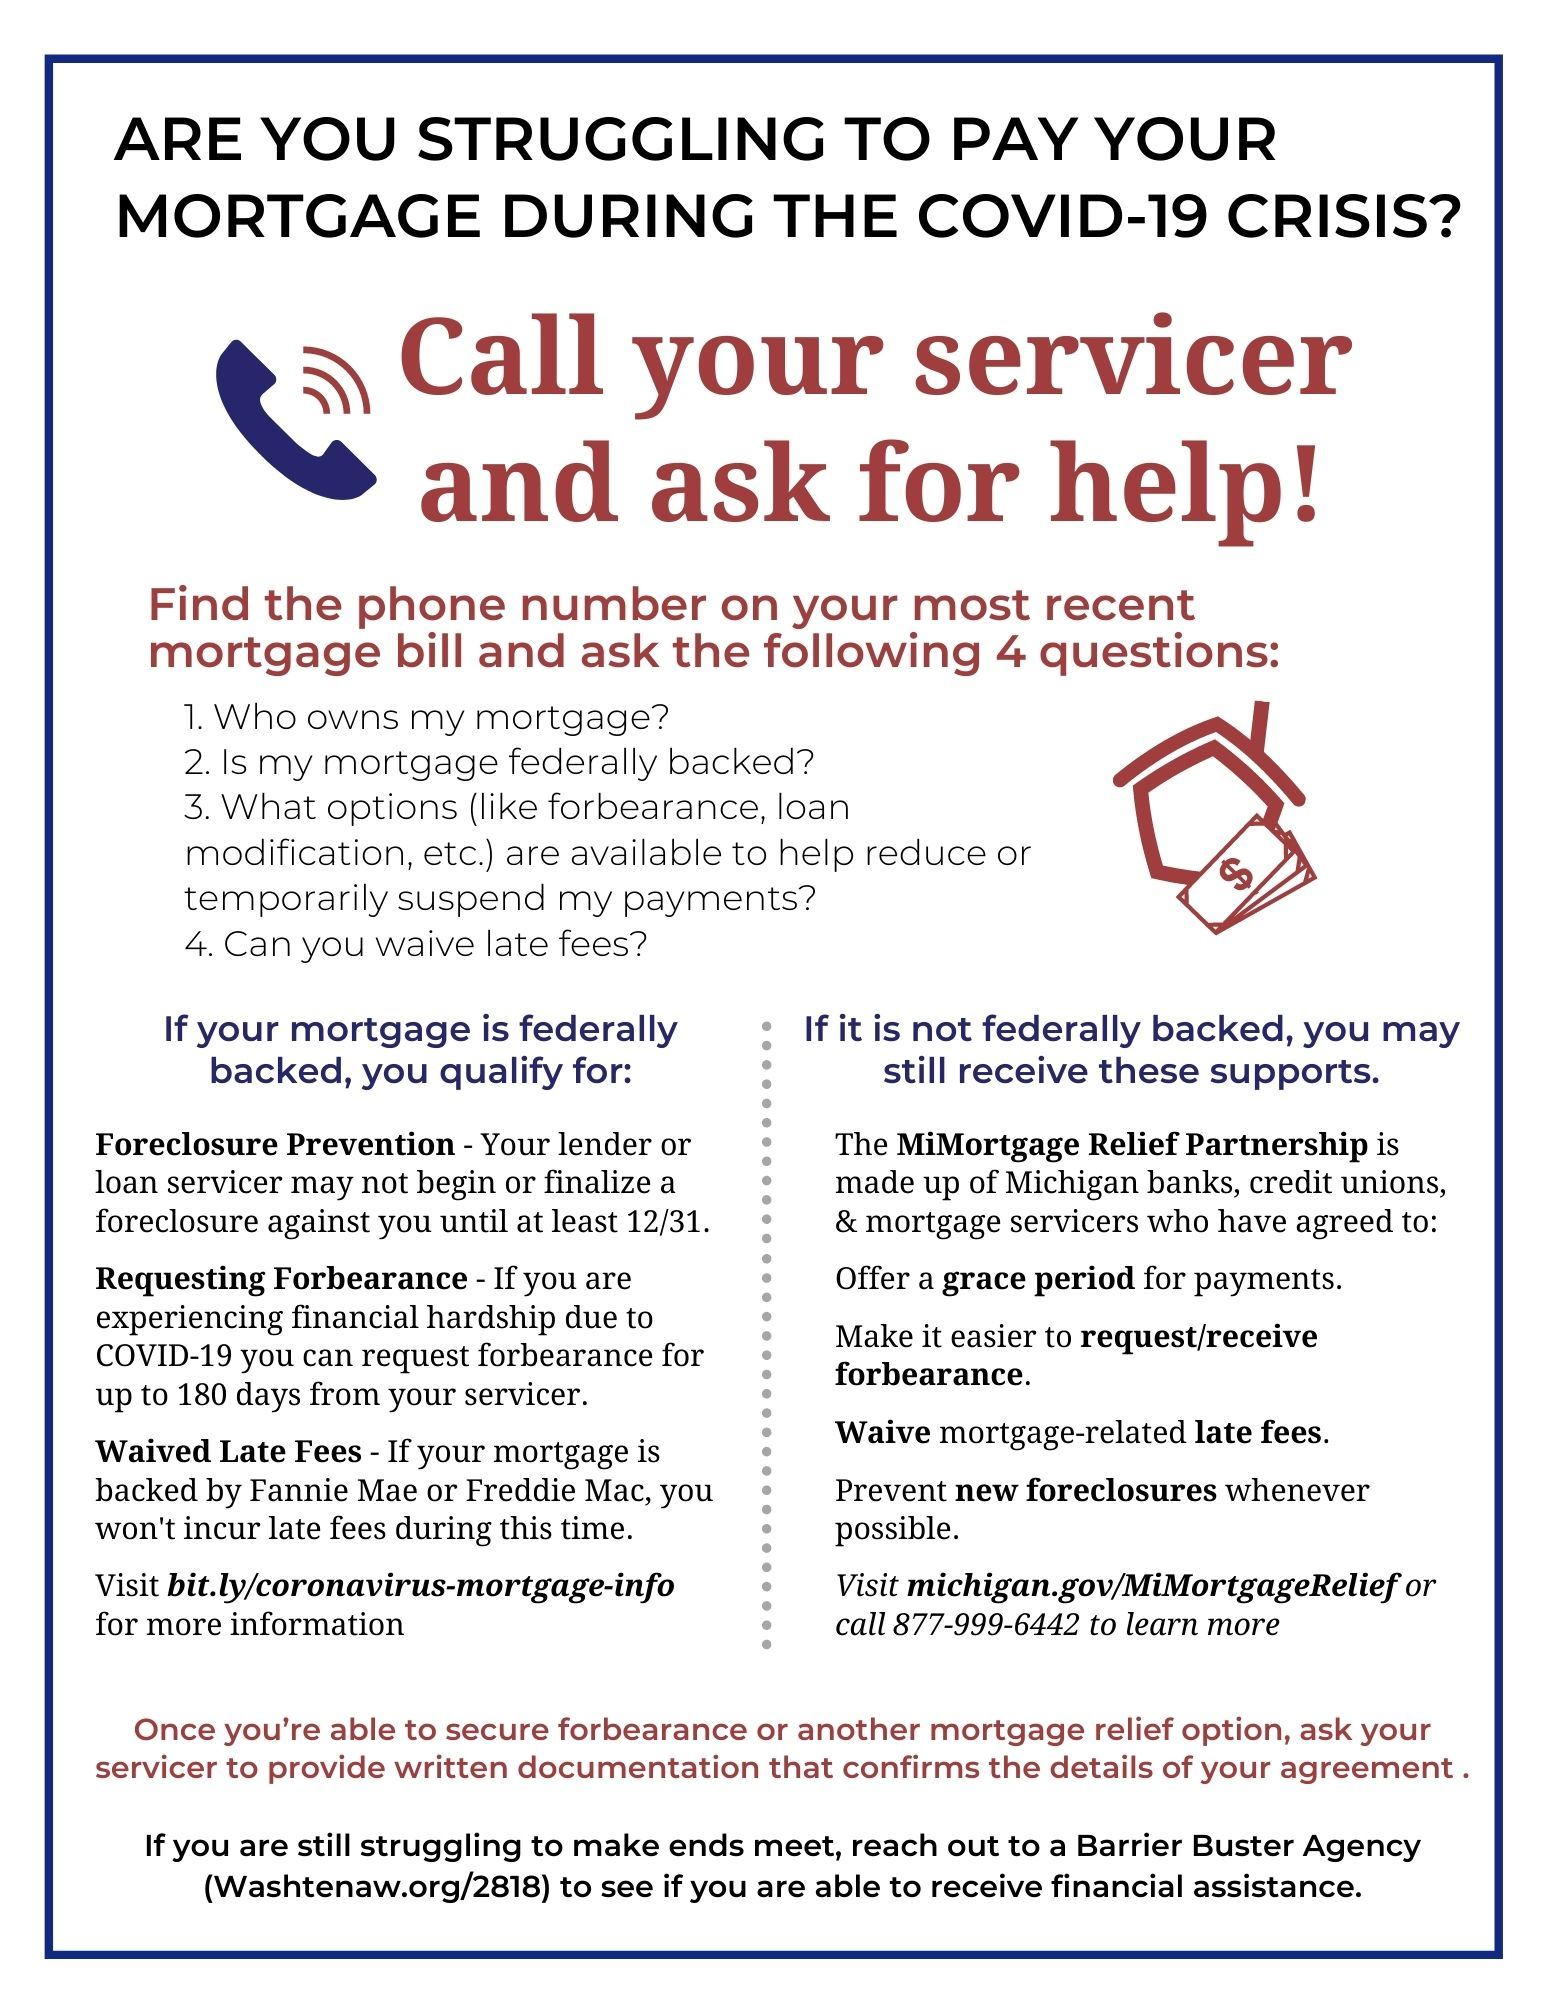 Flyer including information about mortgage protections and resources